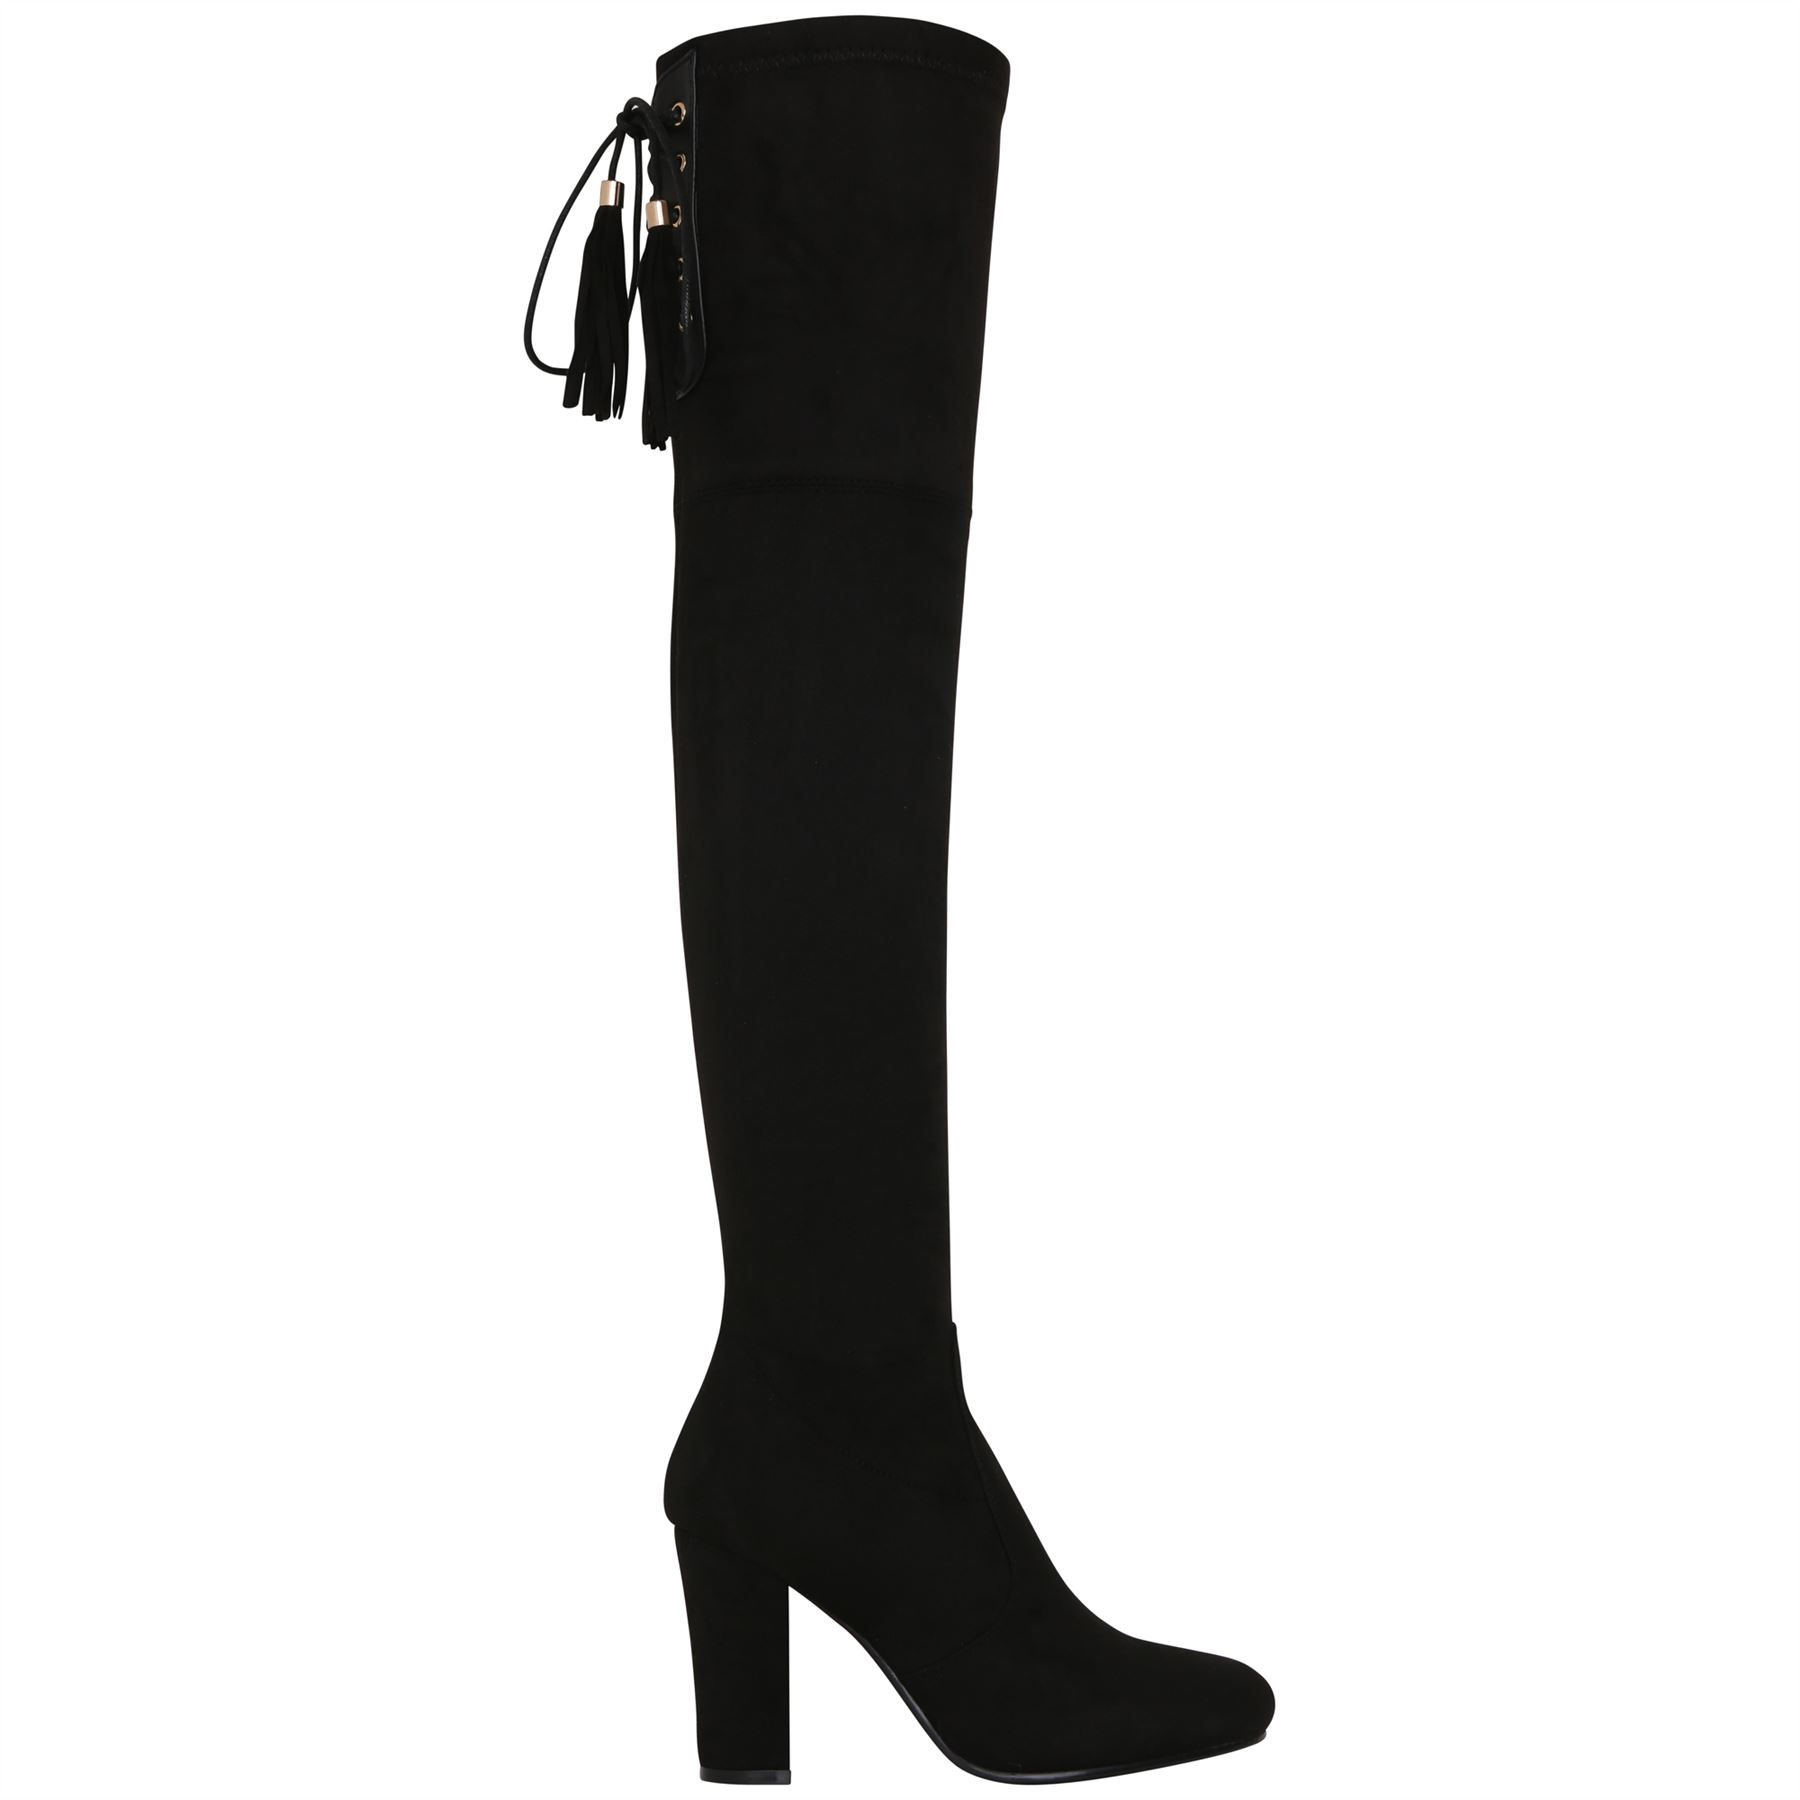 Womens-Over-Knee-High-Boots-Ladies-Low-Block-Heel-Riding-Stretch-Winter-Shoes miniatura 6